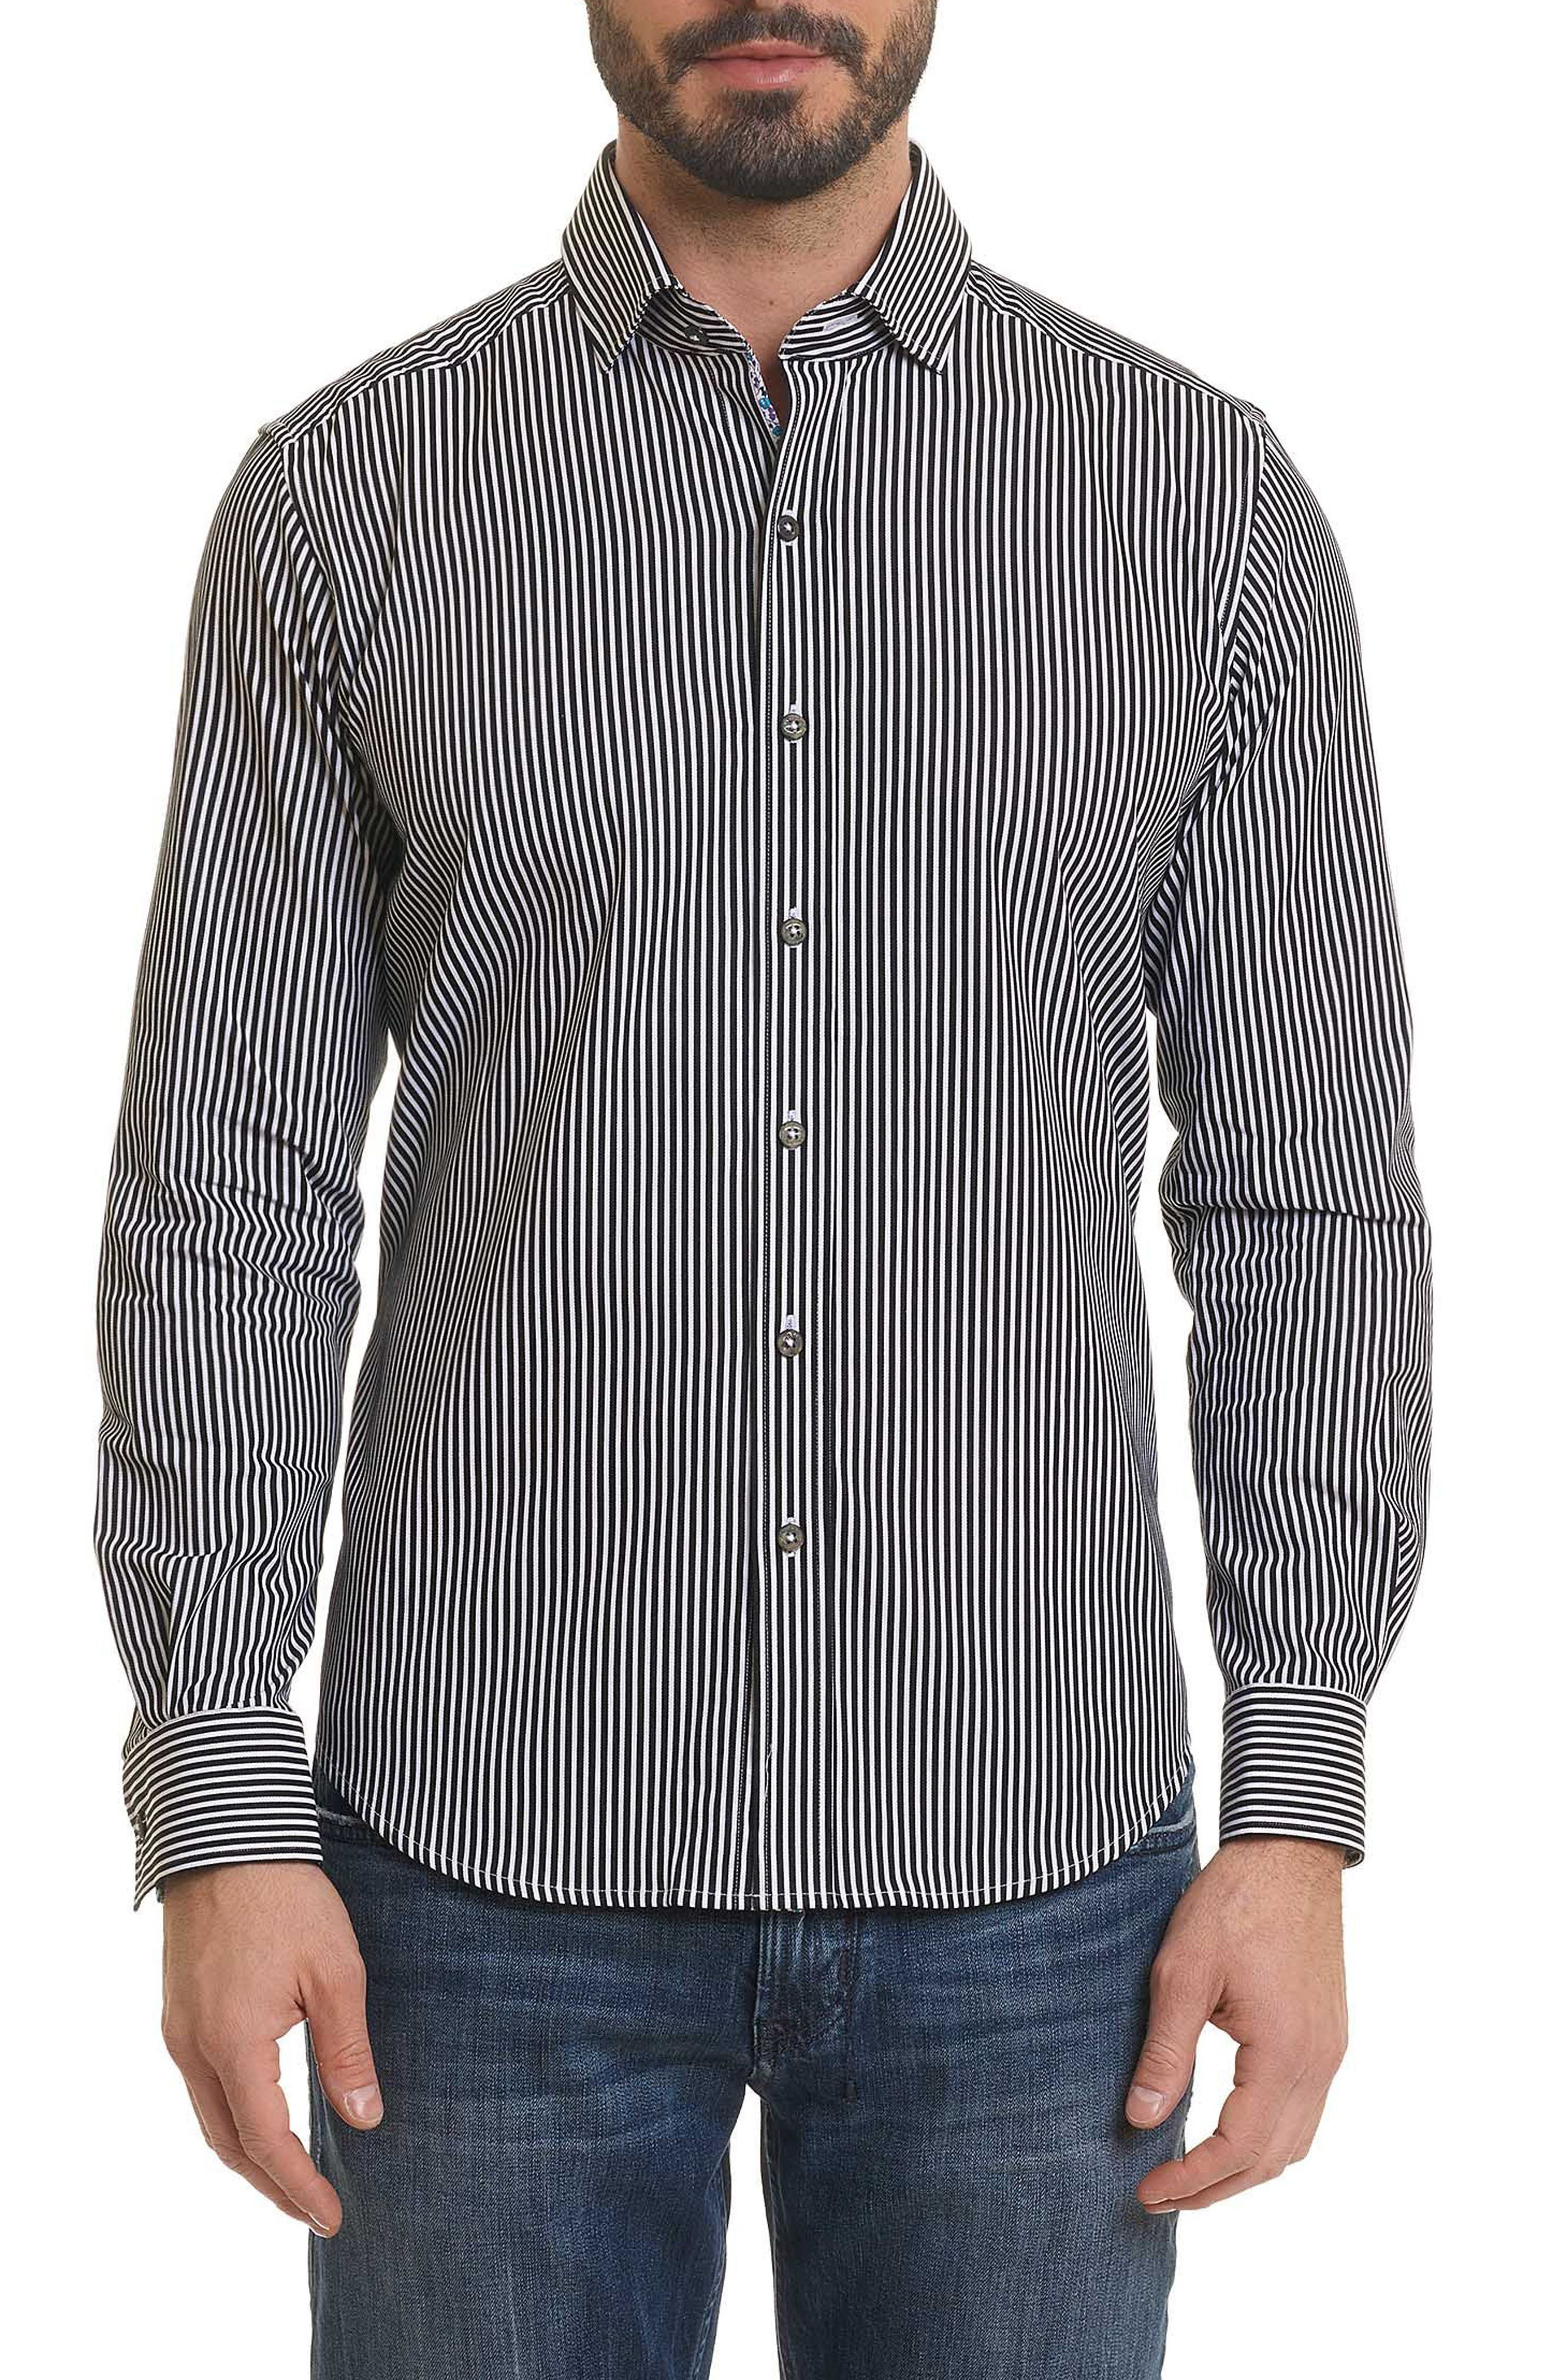 Luther Classic Fit Stripe Sport Shirt,                         Main,                         color, BLACK